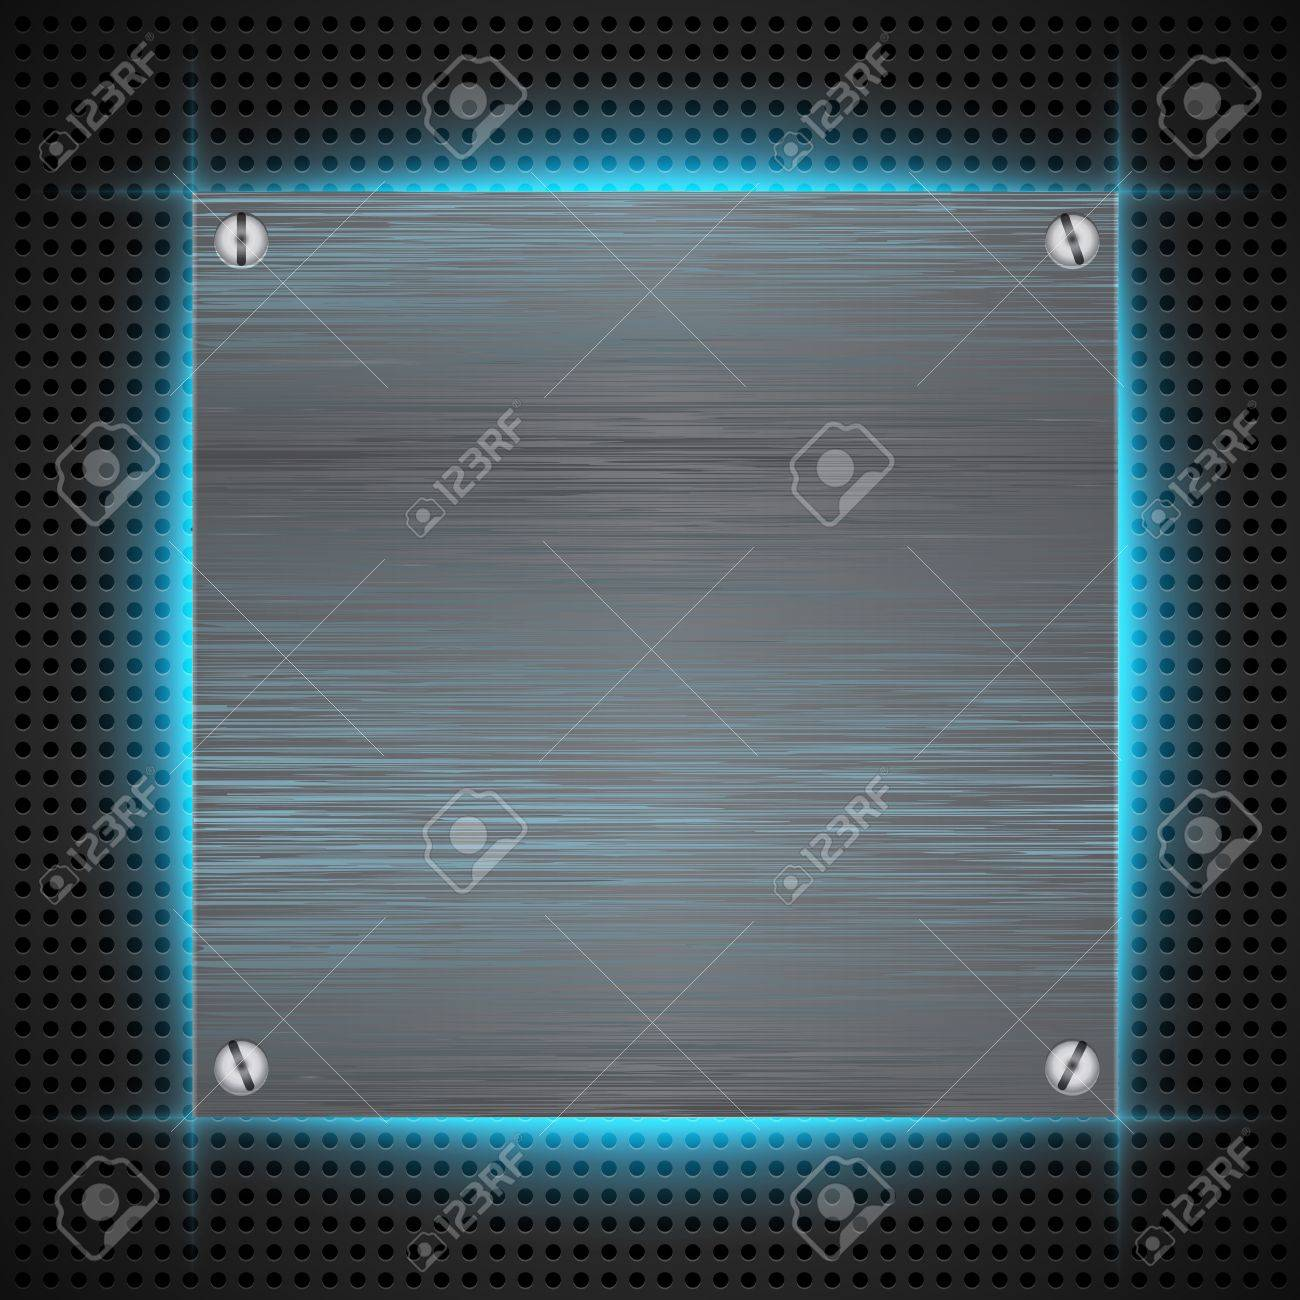 Abstract background with brushed metal inset. illustration Stock Vector - 18514227